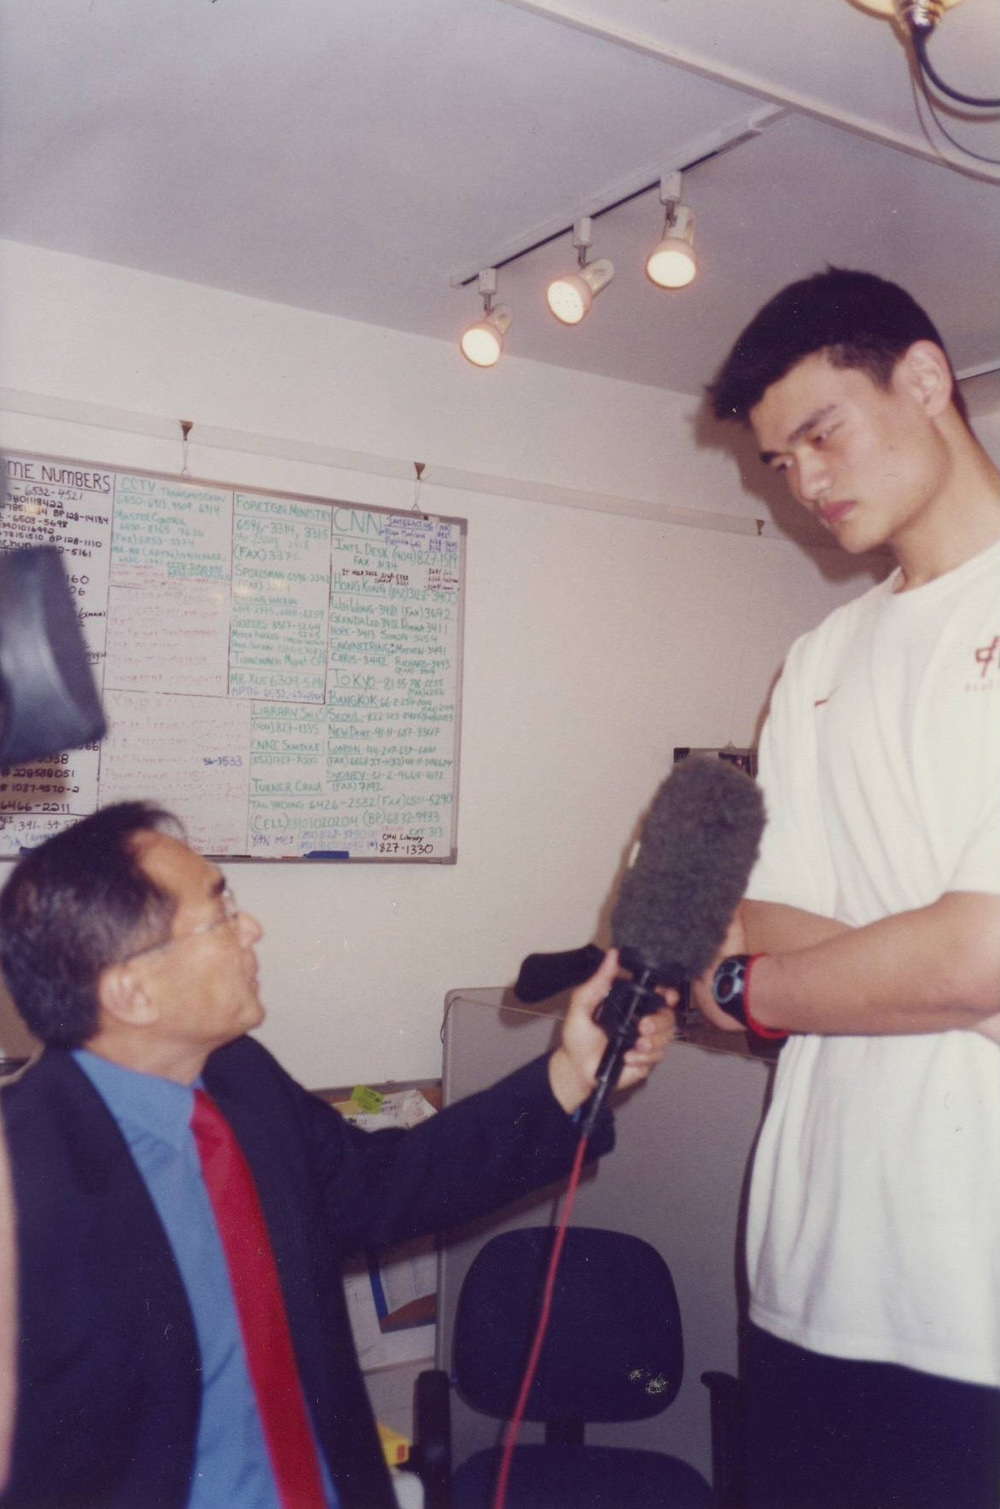 FlorCruz interviewing 2002 NBA No. 1 draft pick Yao Ming (Photo courtesy of Jaime FlorCruz)